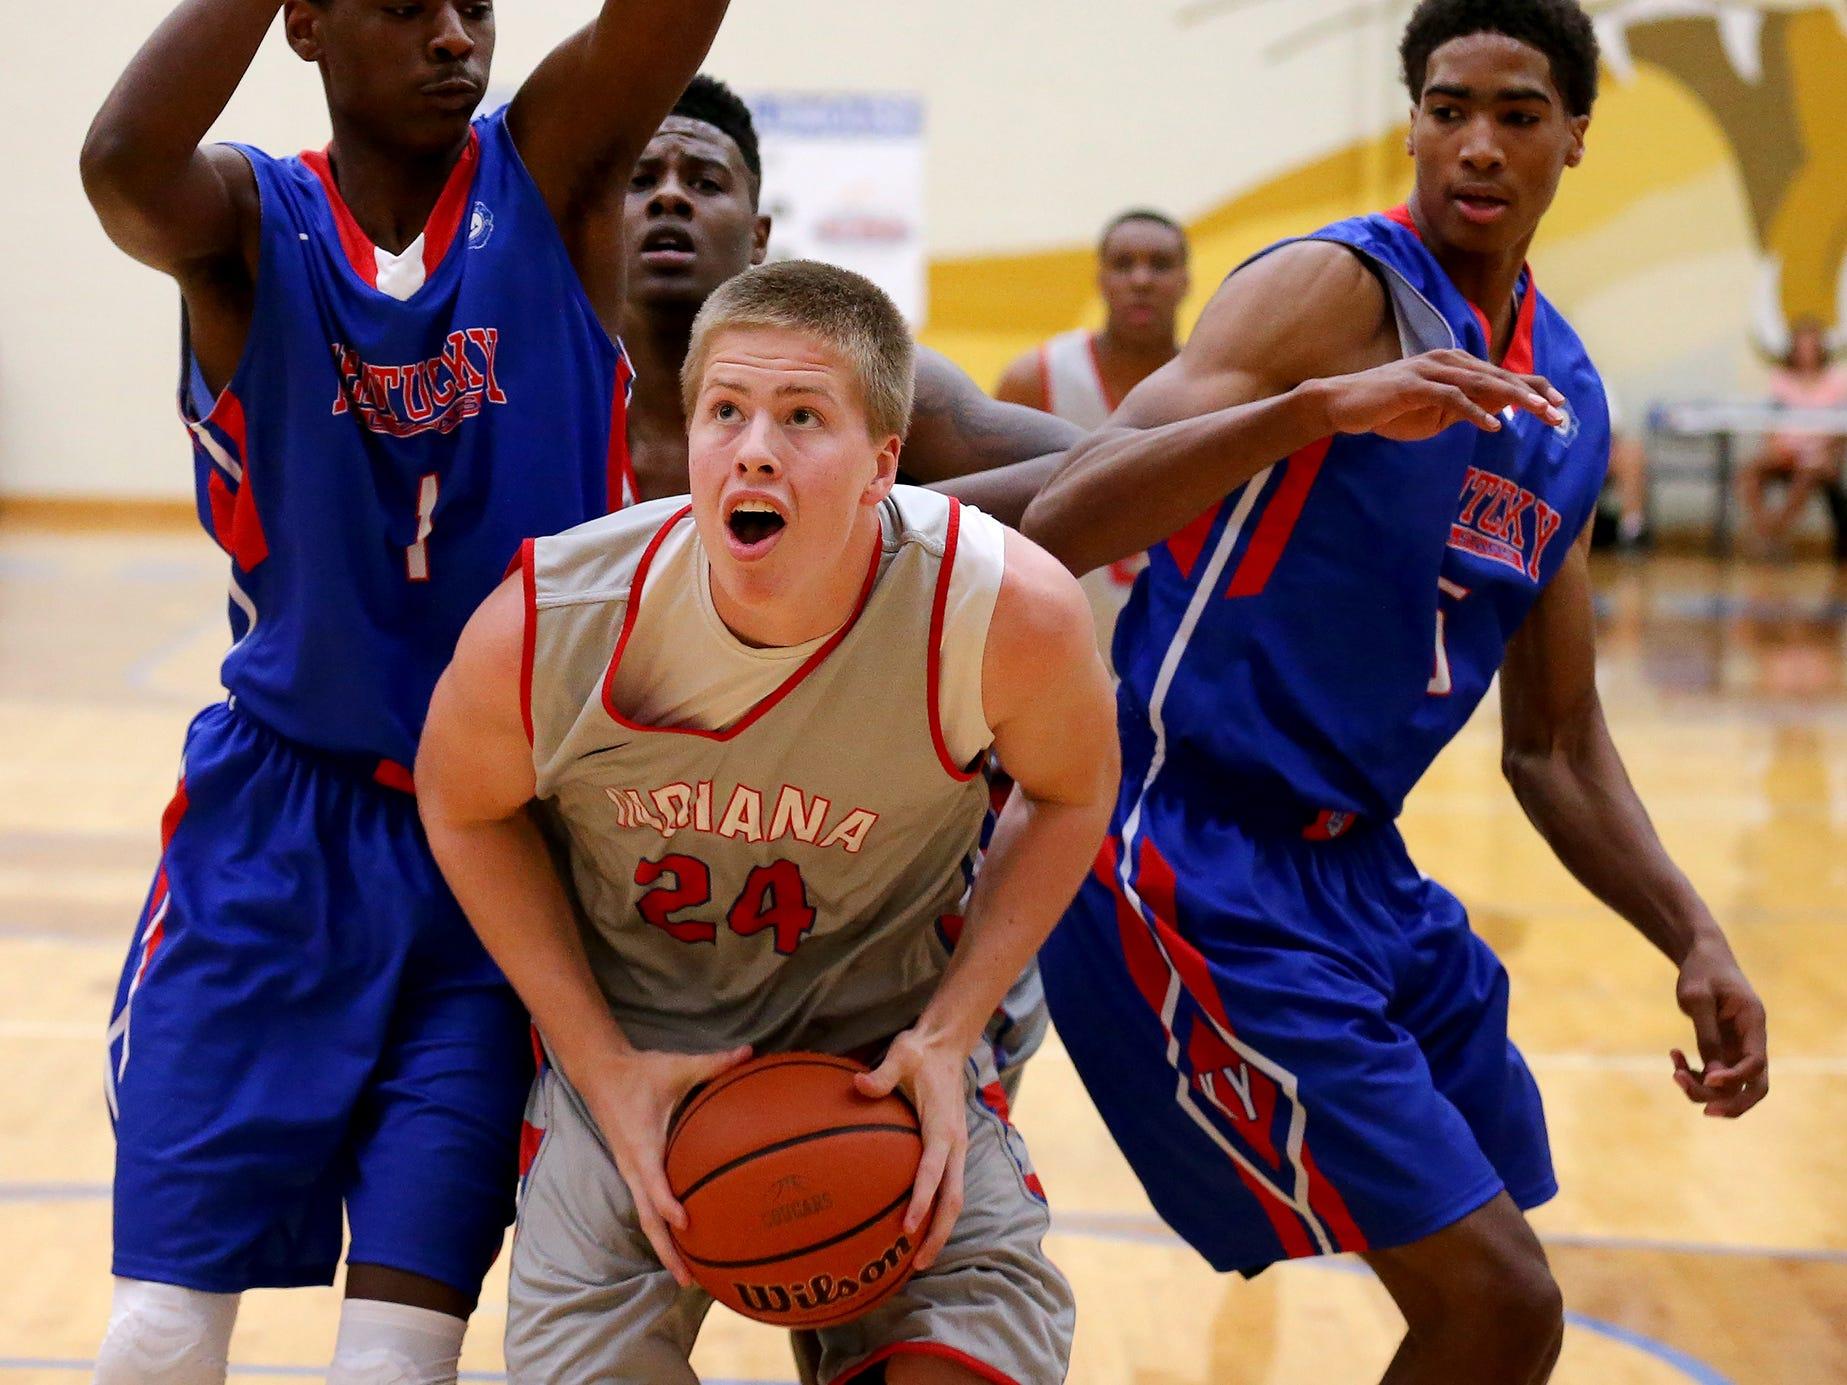 Indiana's Josh Speidel gets the ball under the basket against Kentucky during the Junior All-Star Game, Friday, June 6, 2014, at Greenfield Central High School. Indiana won the game 127-104.